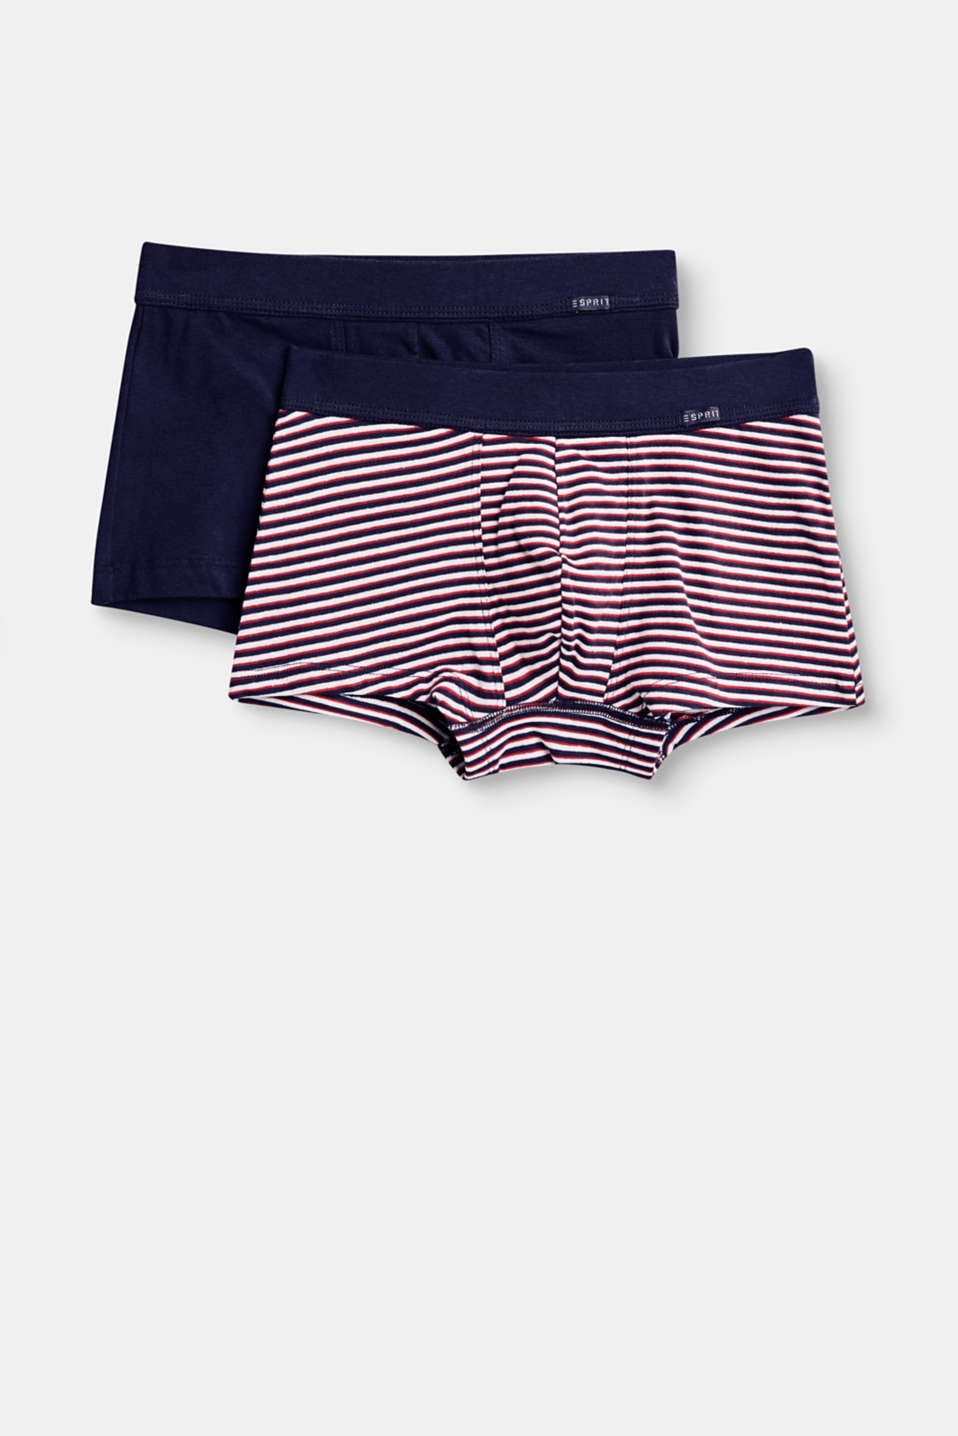 Esprit - Lot de 2 boxers en coton stretch